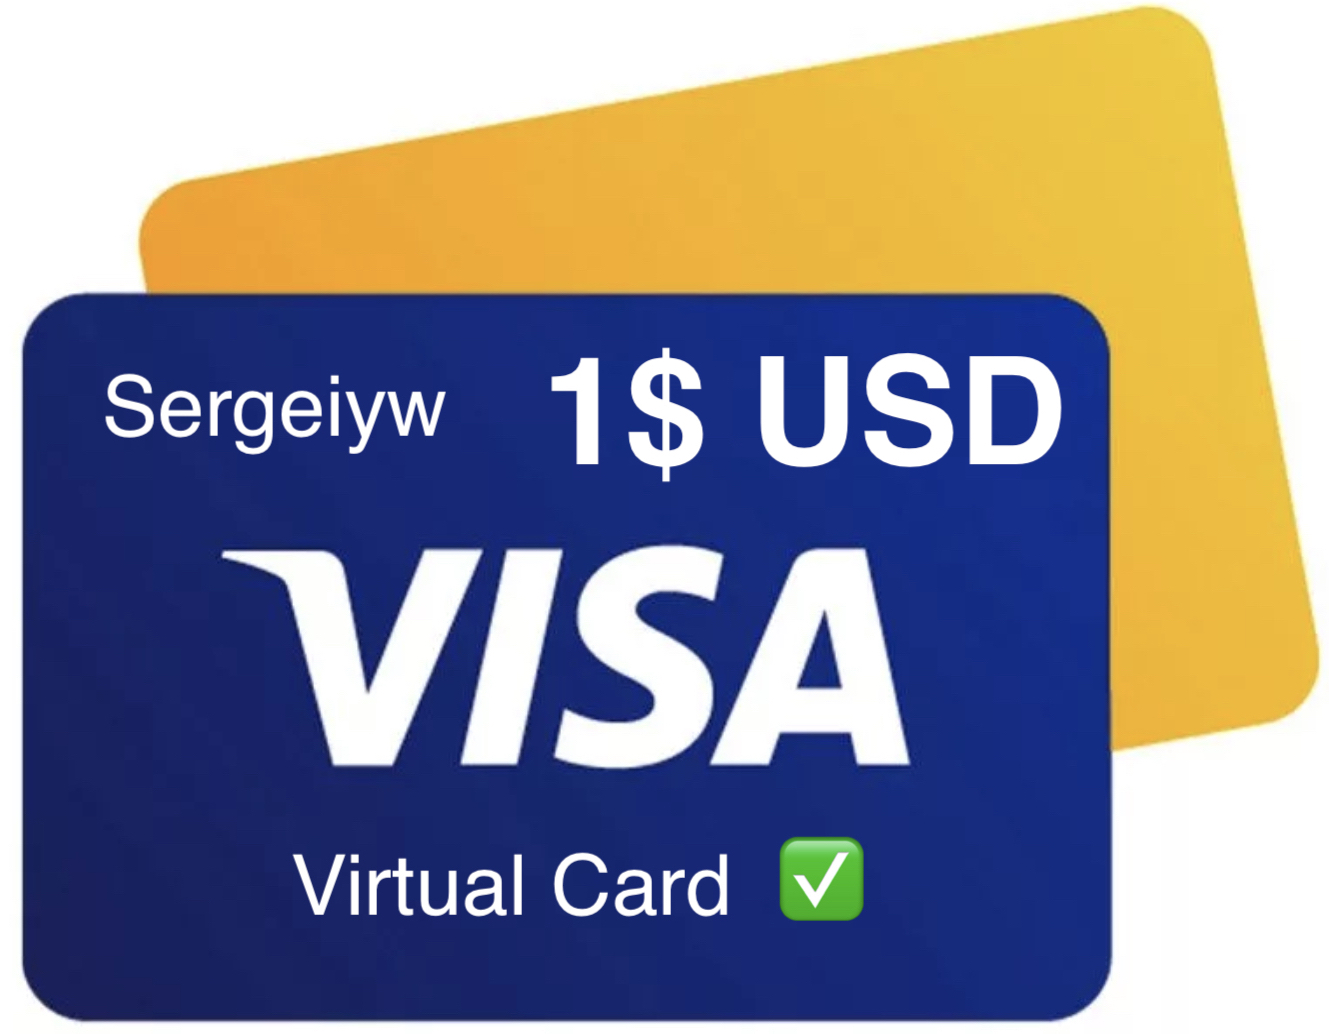 1$ USD VISA VIRTUAL without 3Ds, statement, RU Bank ✅